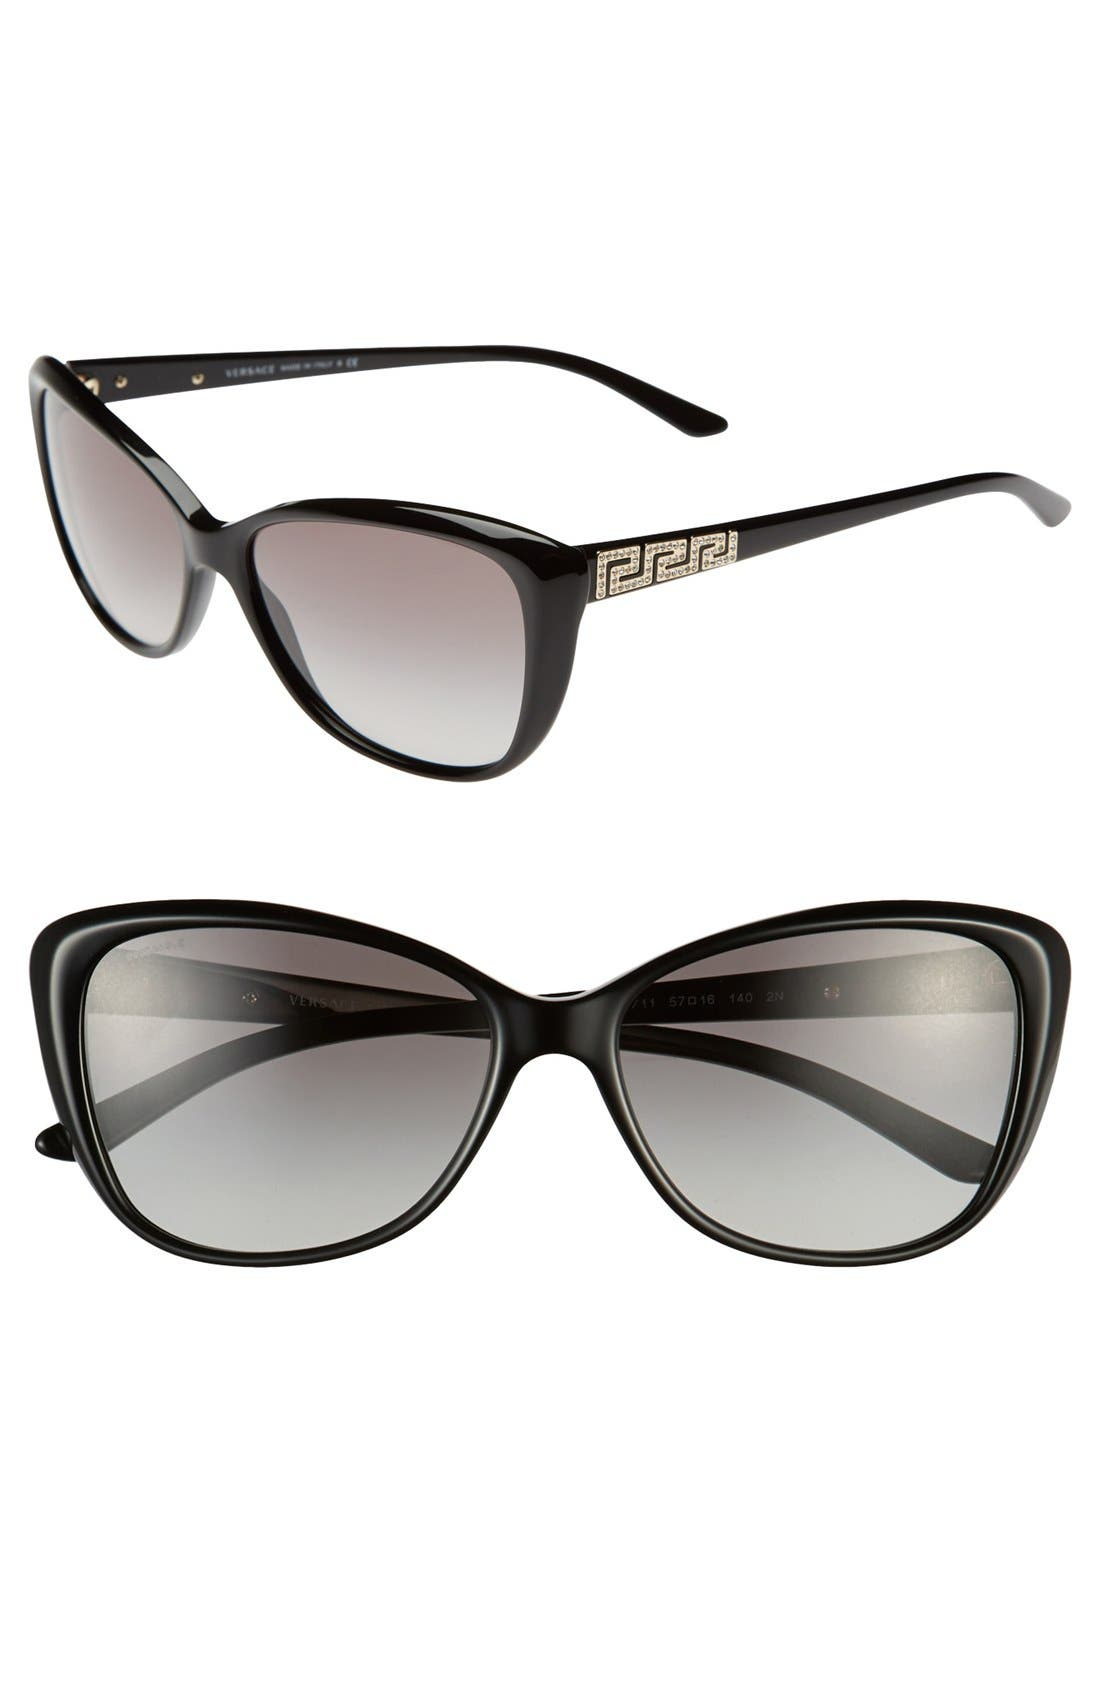 Main Image - Versace 'Rock Icons - Greca' 57mm Butterfly Sunglasses